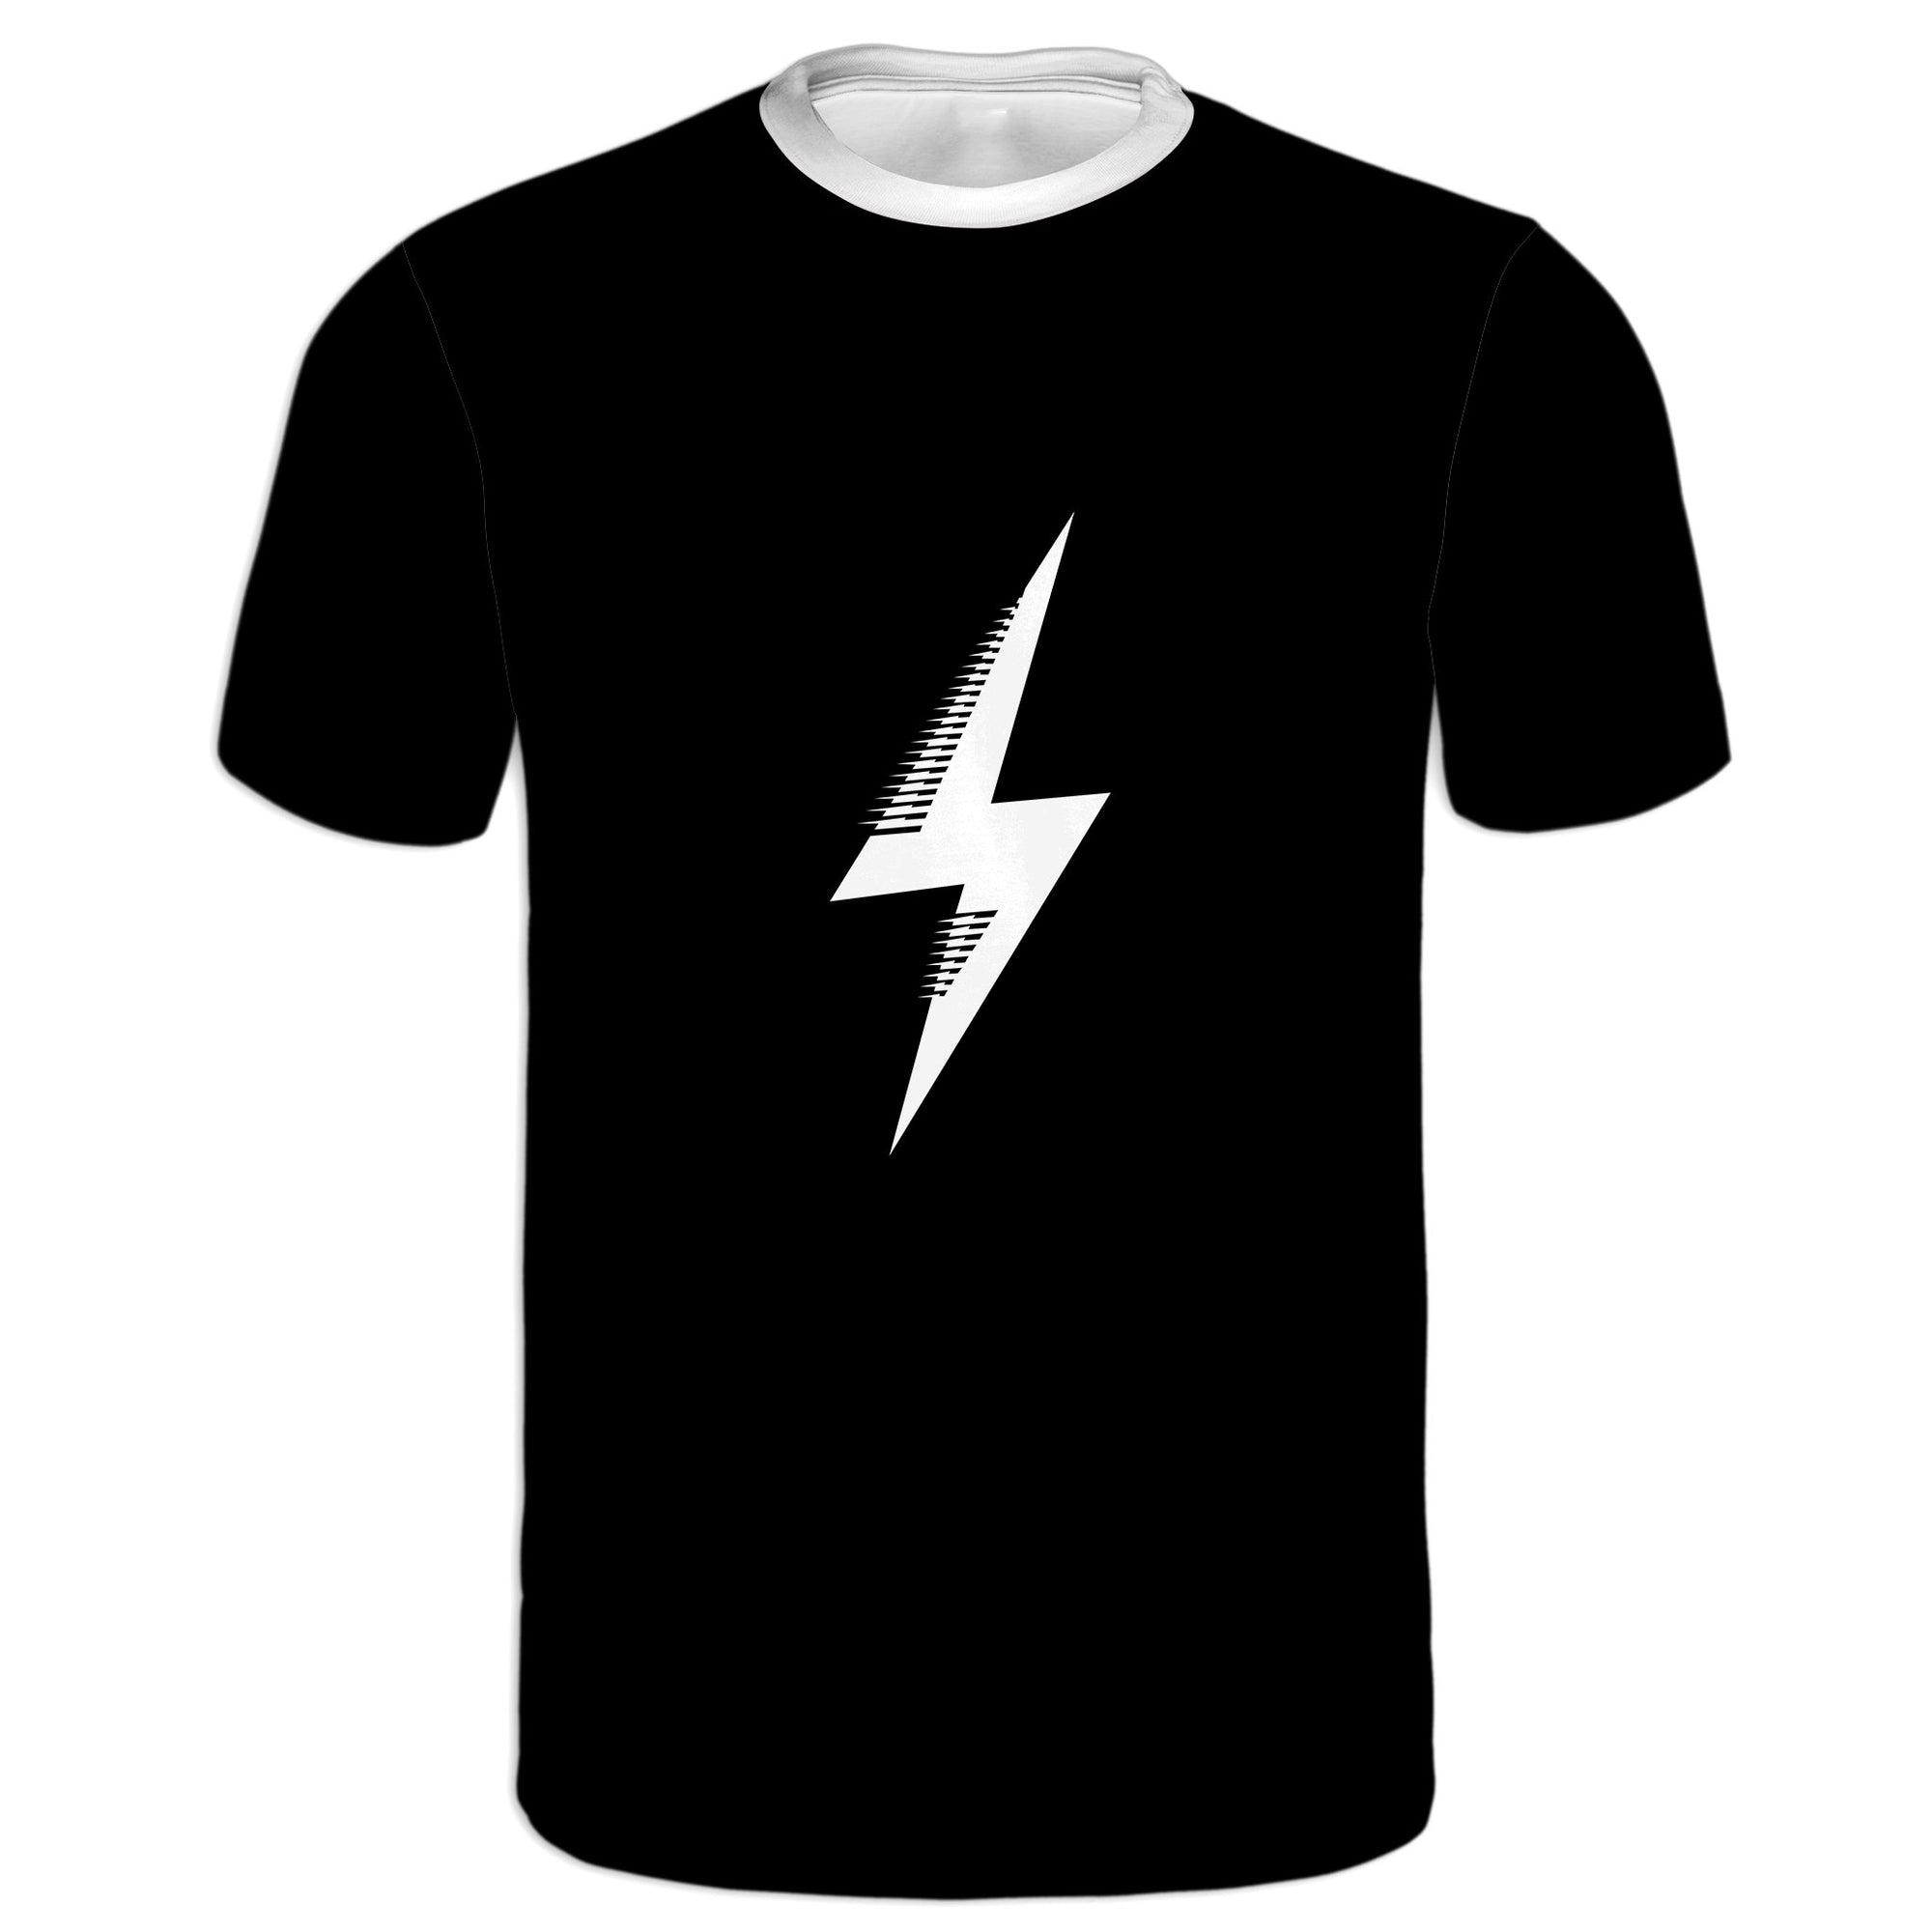 Ambition Mens Tee | flashgordonshop.com